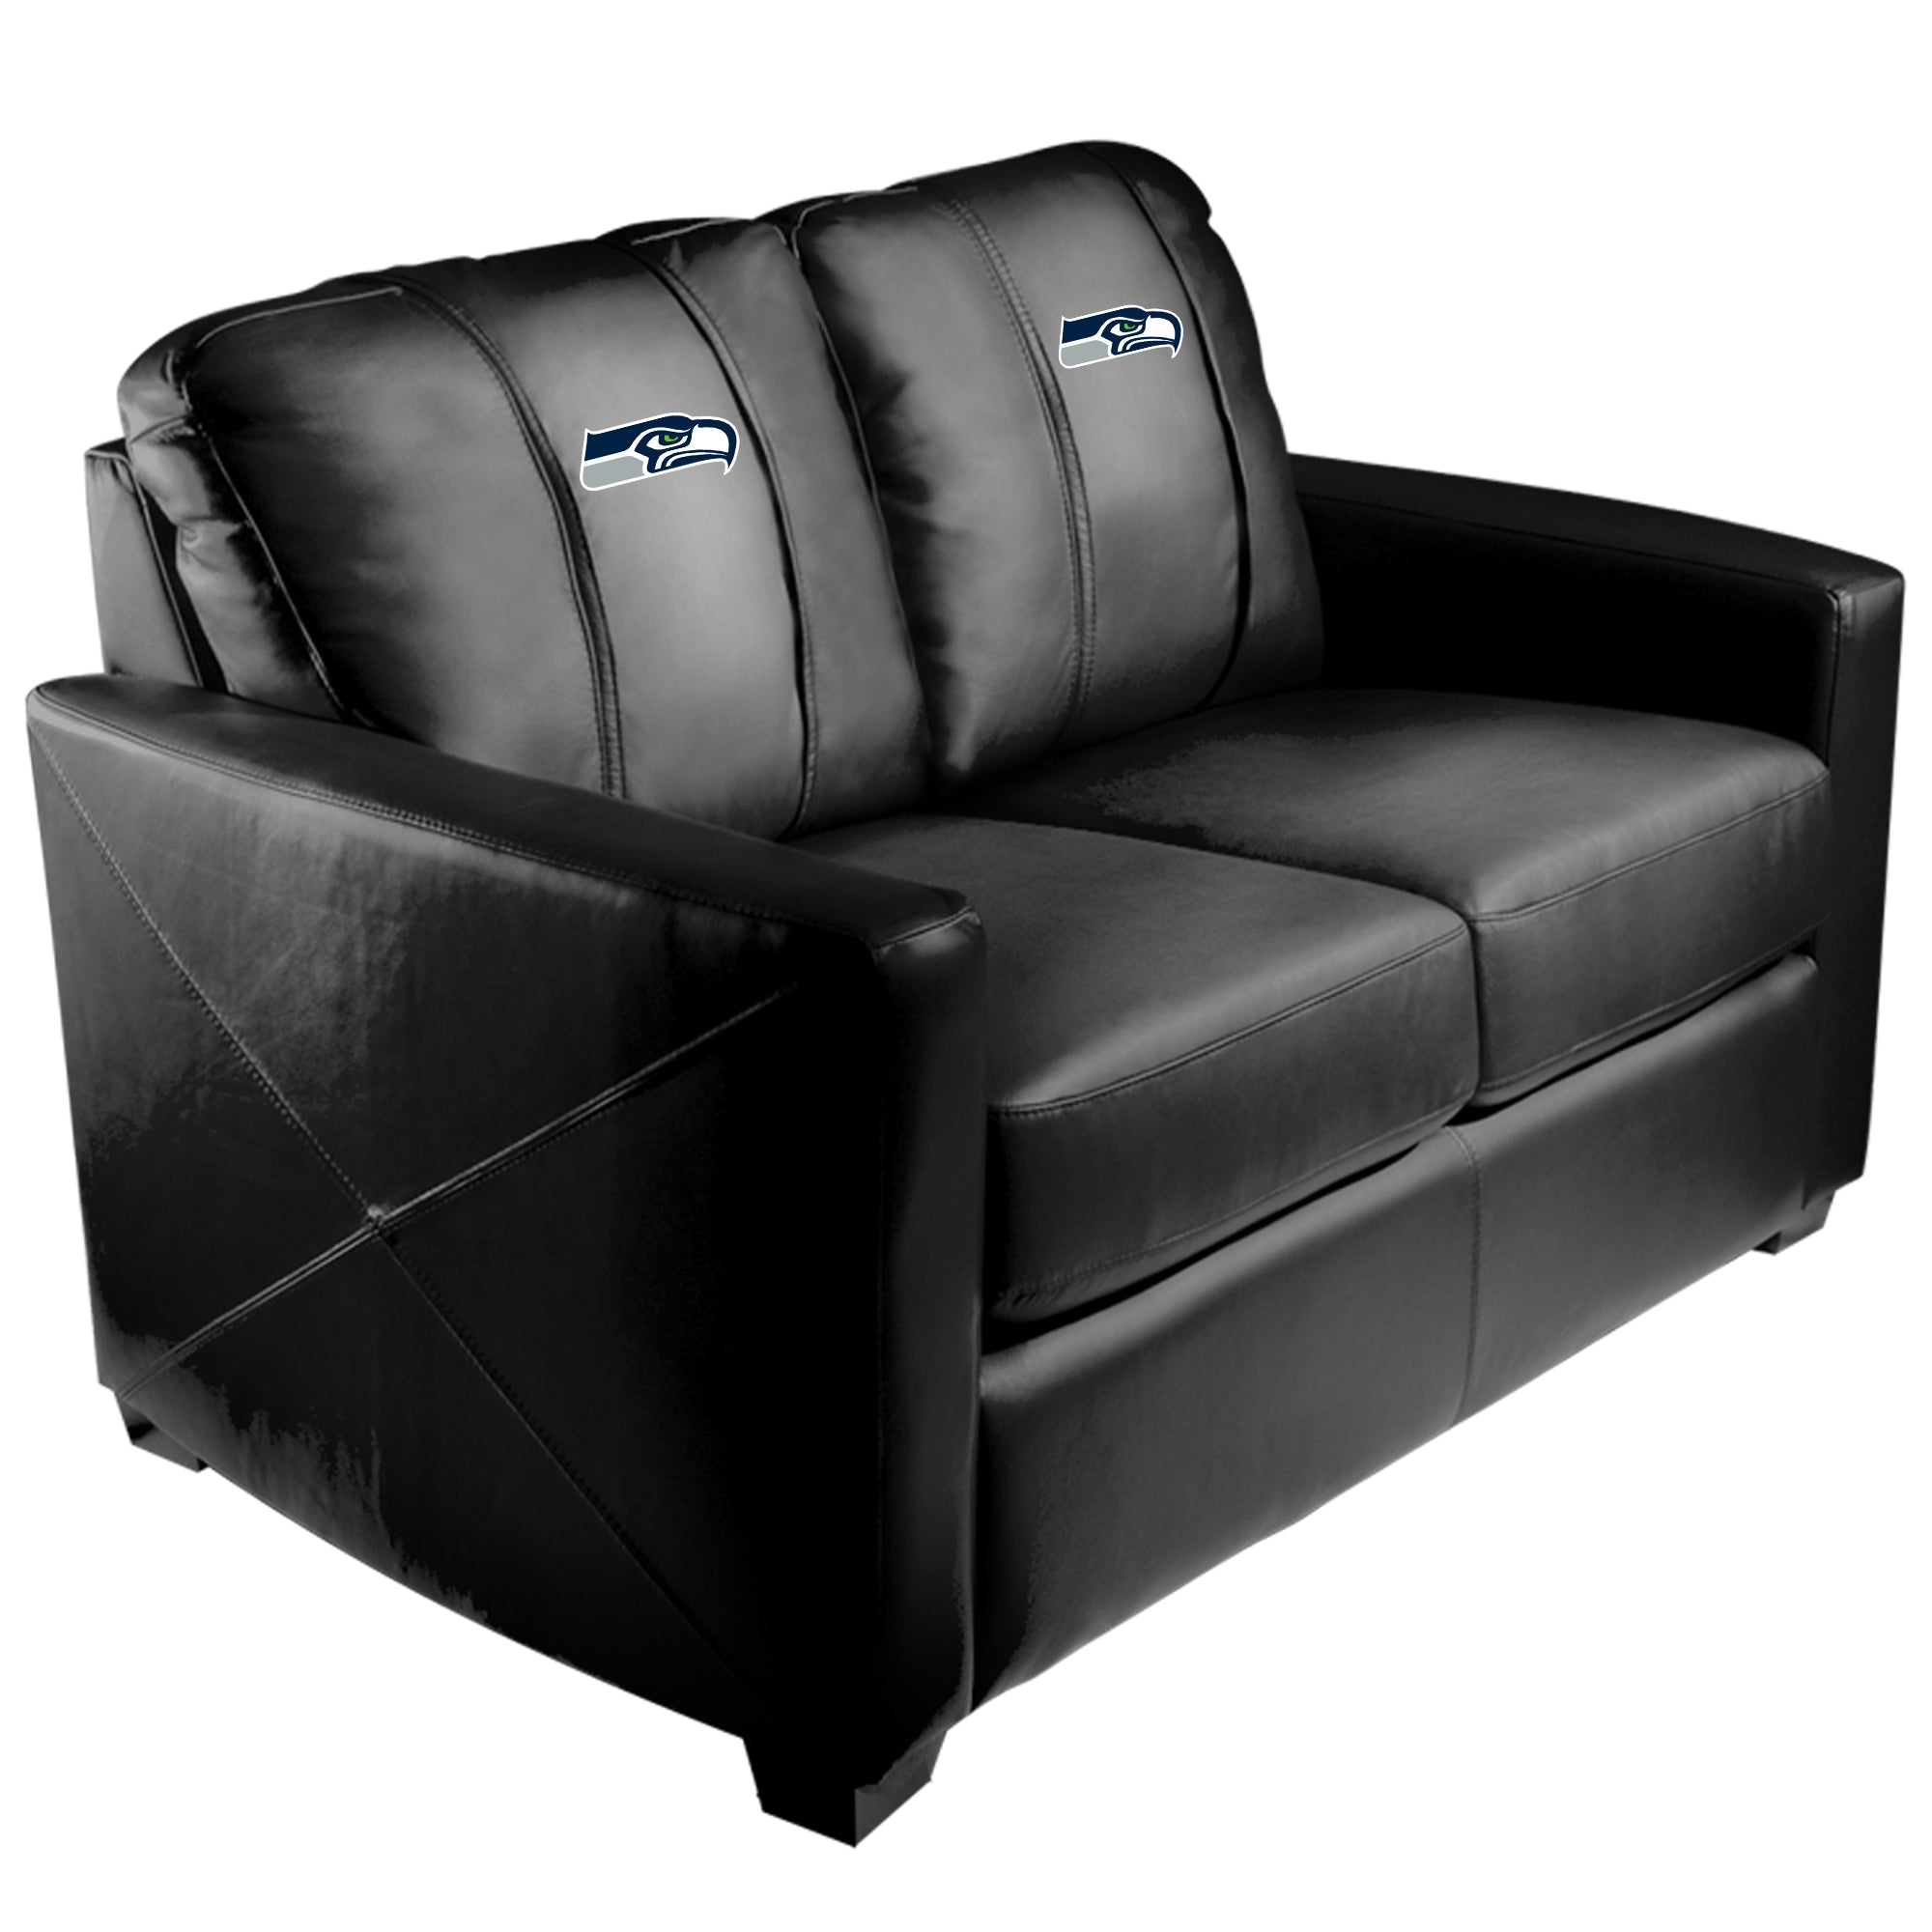 Silver Loveseat with  Seattle Seahawks Primary Logo